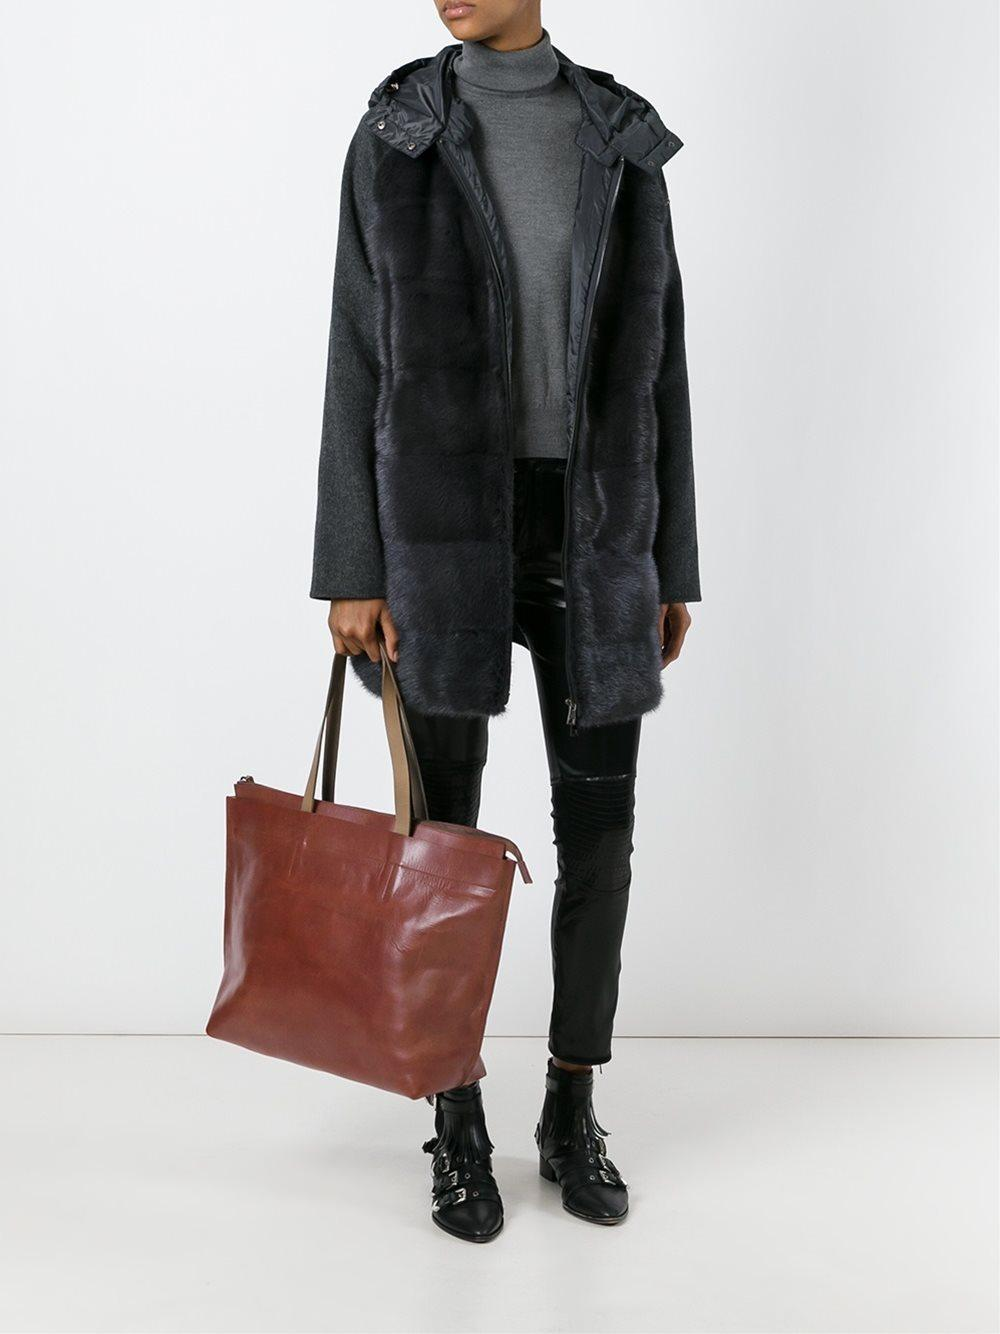 Ally Capellino Leather Large 'wintour' Tote Bag in Brown